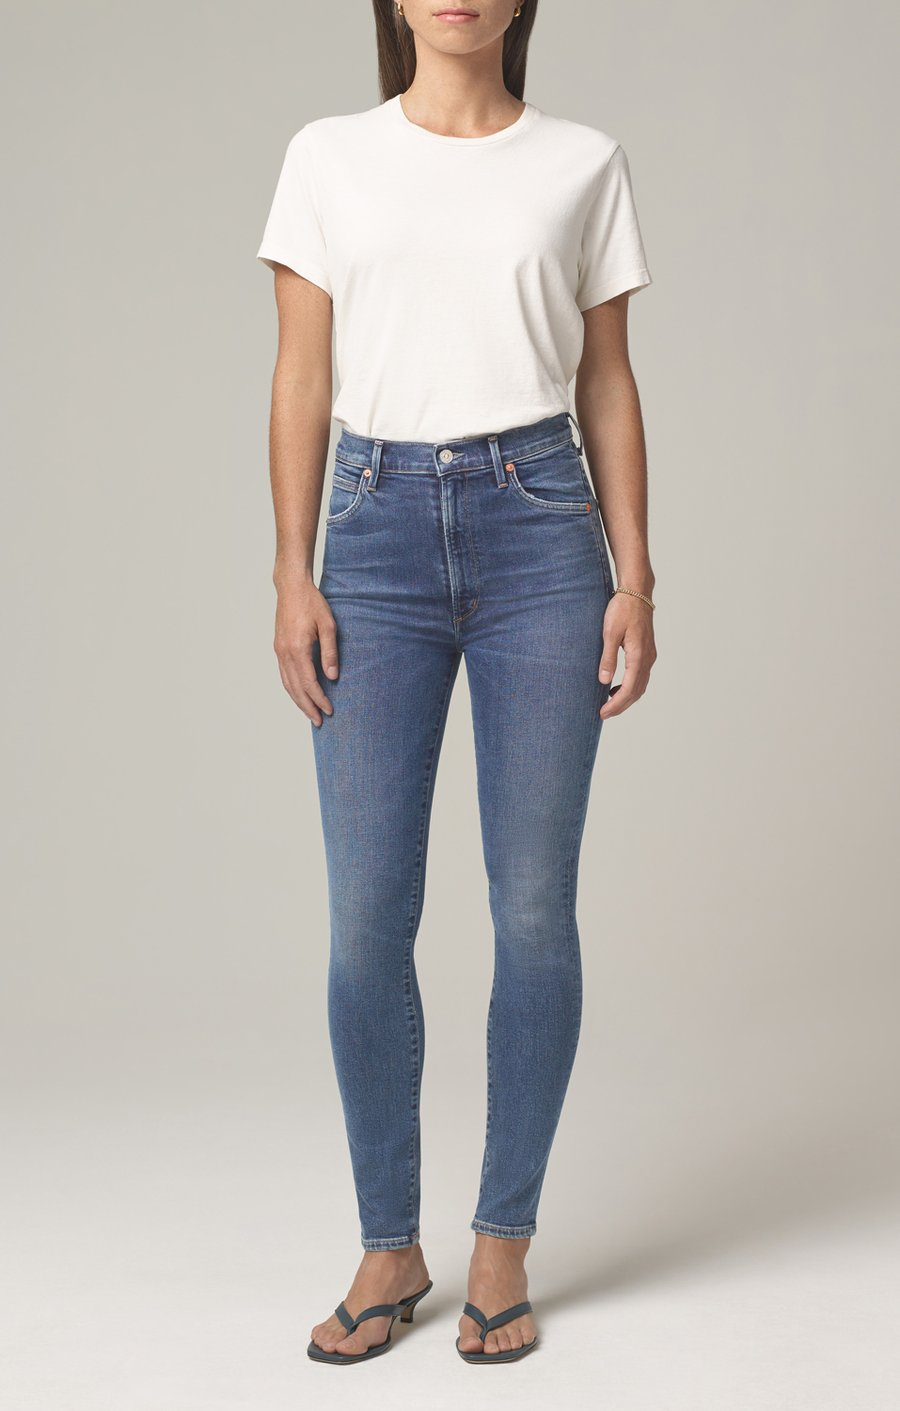 CHRISSY HIGH RISE SKINNY FIT - STORY